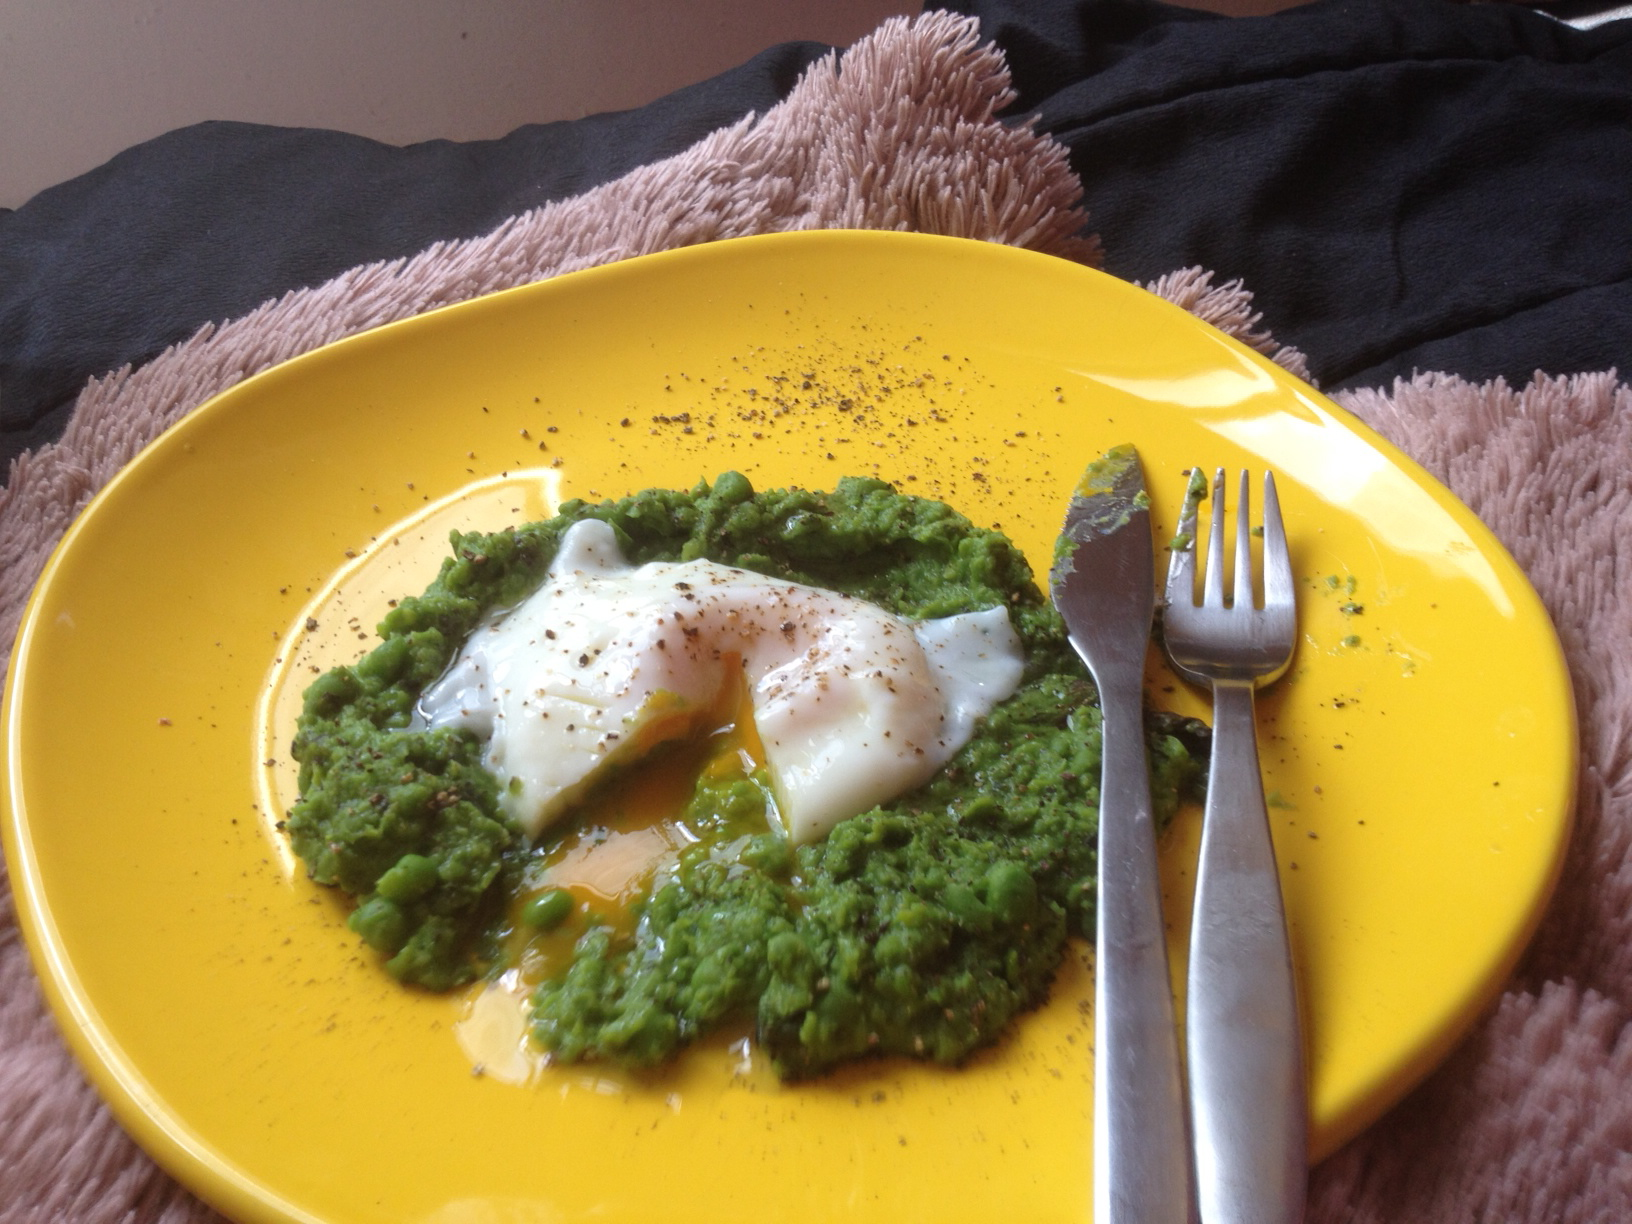 Poached egg on mint spring pea puree with truffle oil